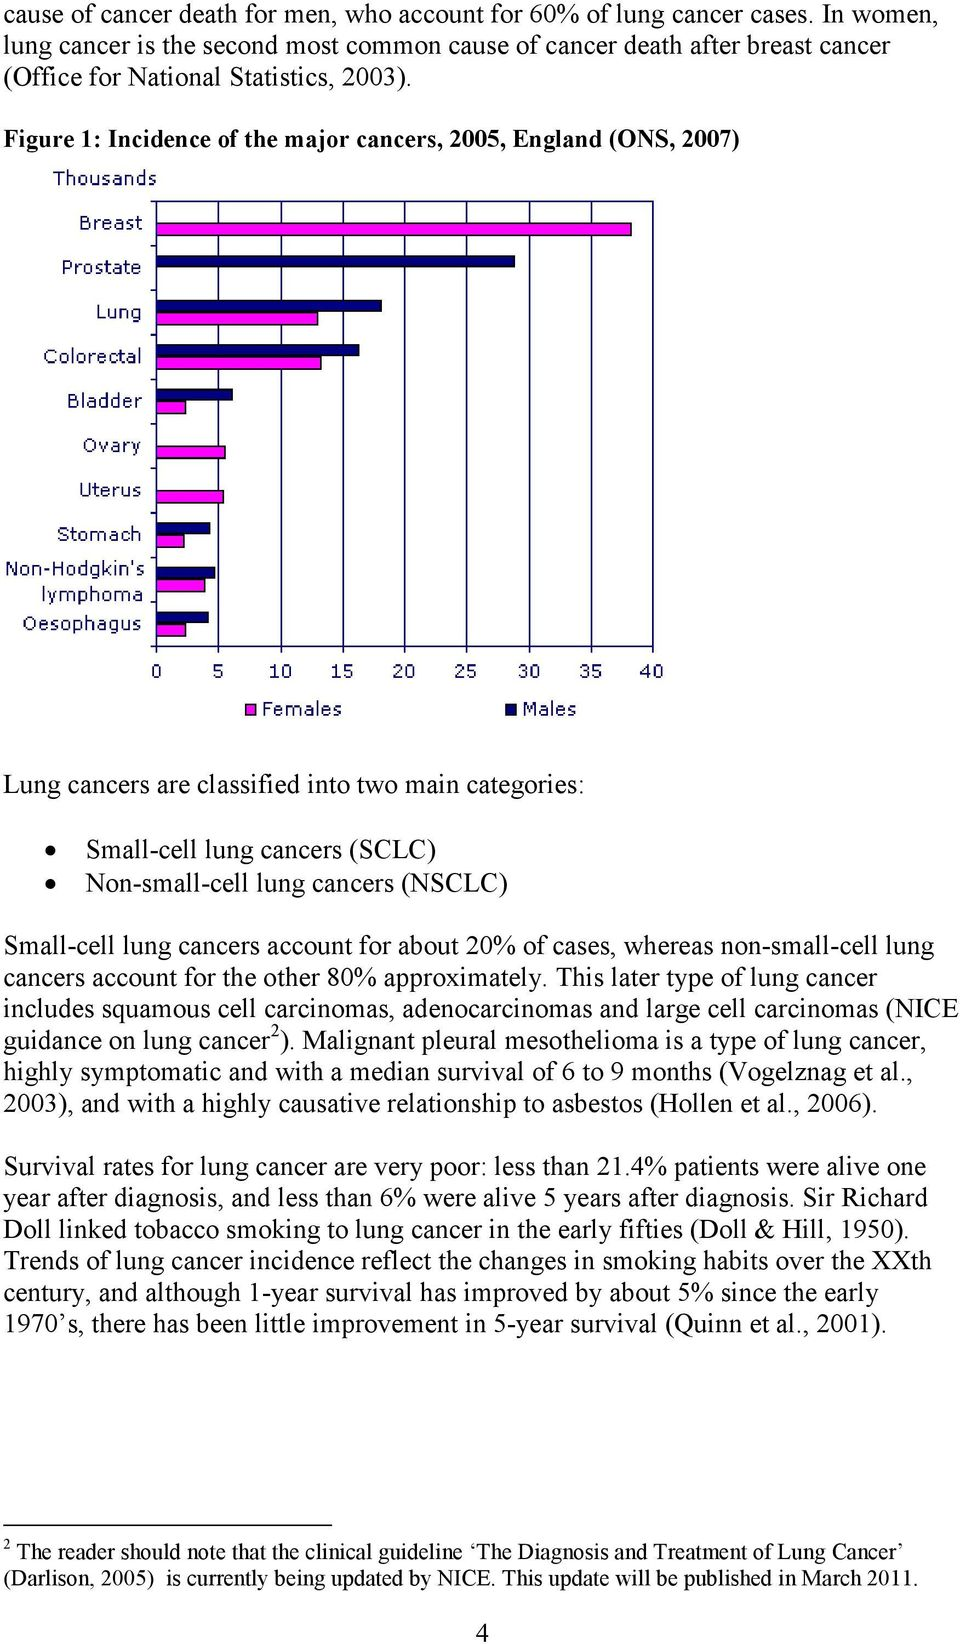 Figure 1: Incidence of the major cancers, 2005, England (ONS, 2007) Lung cancers are classified into two main categories: Small-cell lung cancers (SCLC) Non-small-cell lung cancers (NSCLC) Small-cell